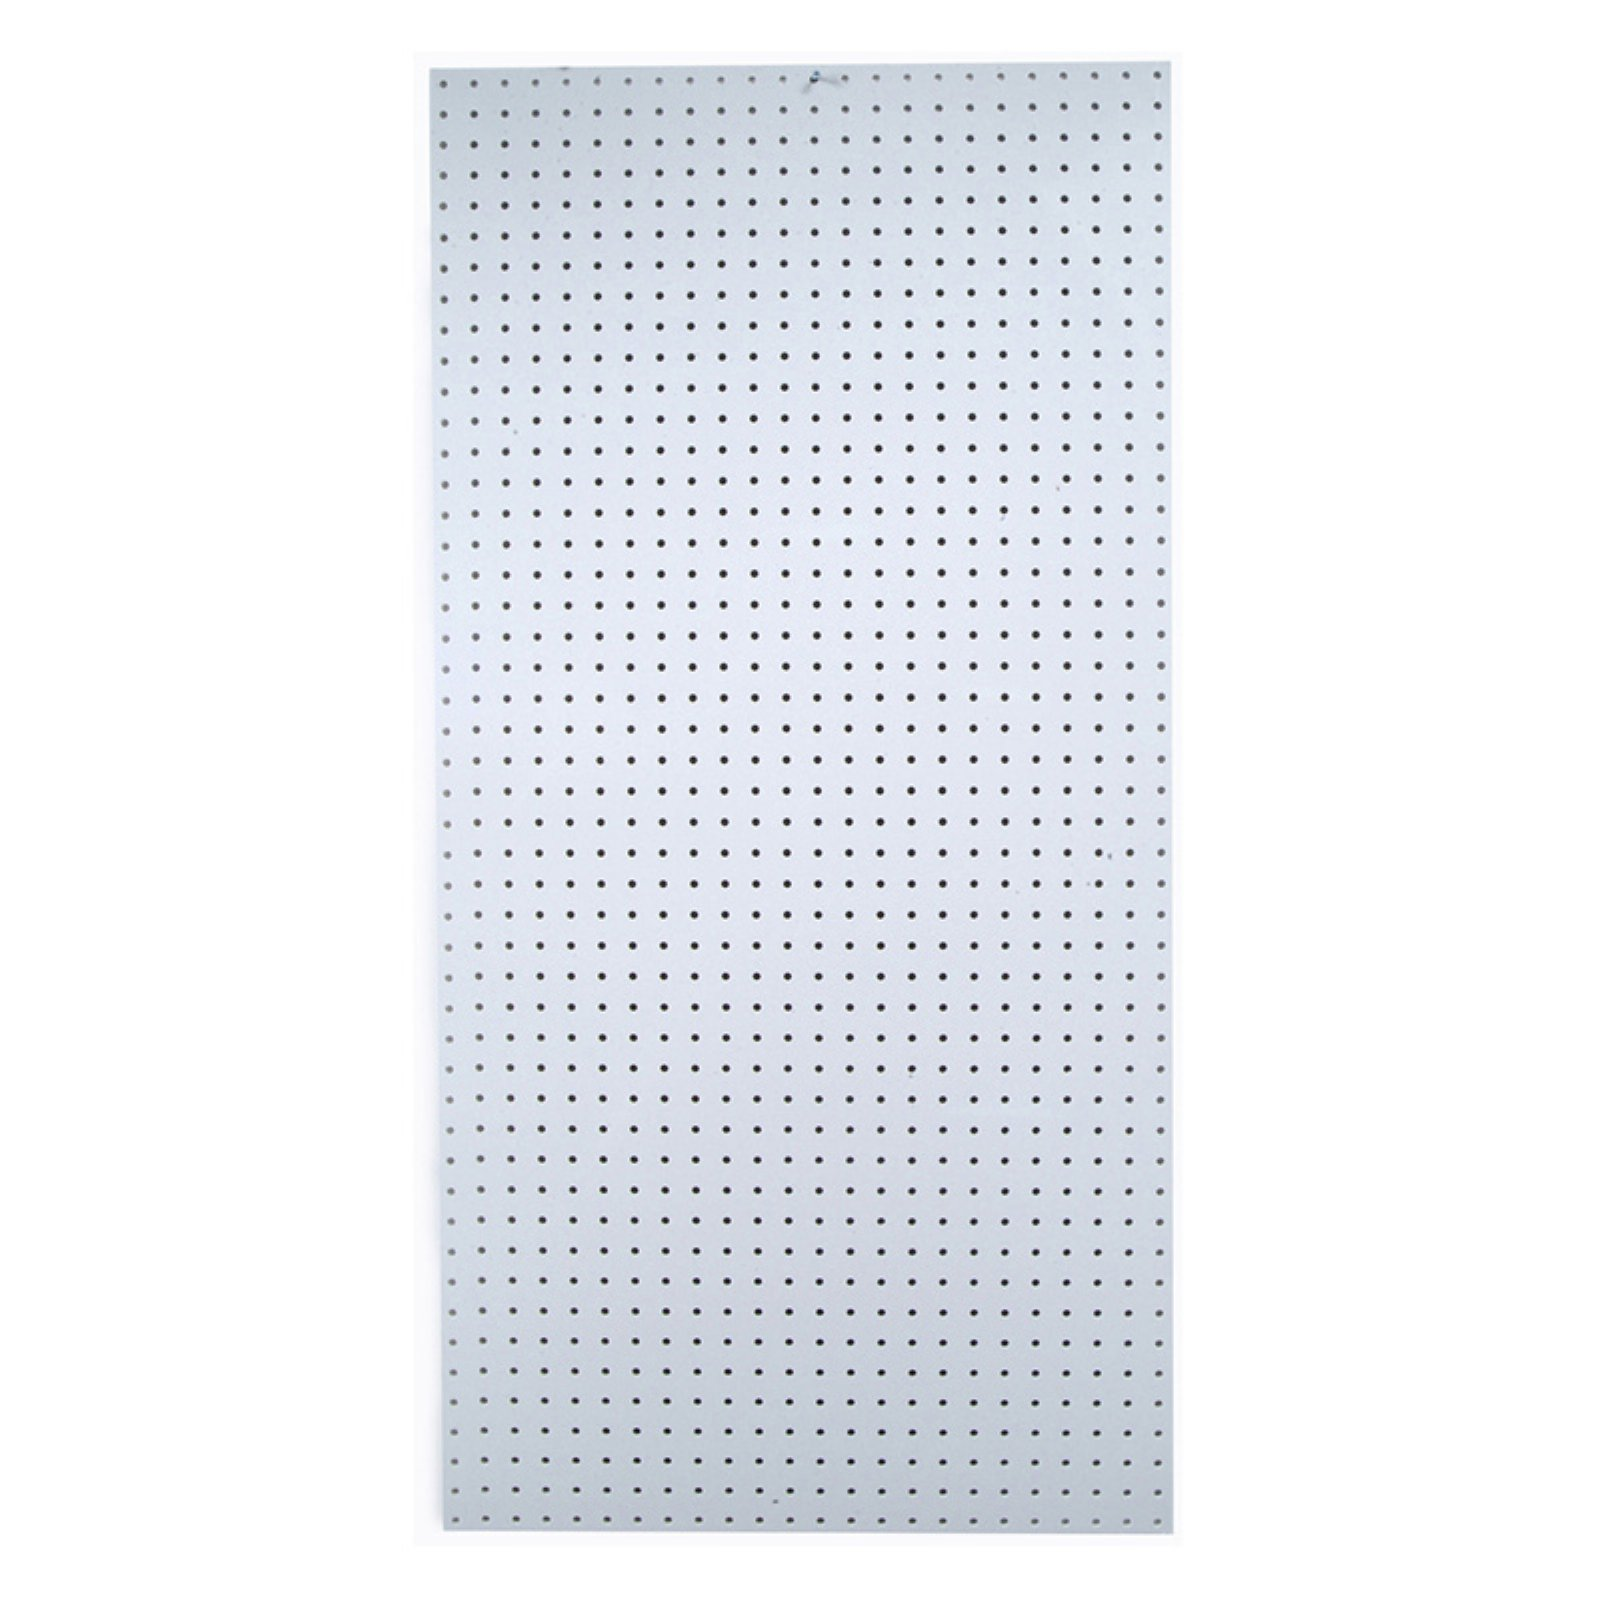 """DuraBoard 48""""W x 96""""H x 1/4""""D White Polypropylene Pegboard with 9/32"""" Hole Size and 1"""" O.C. Hole Spacing"""